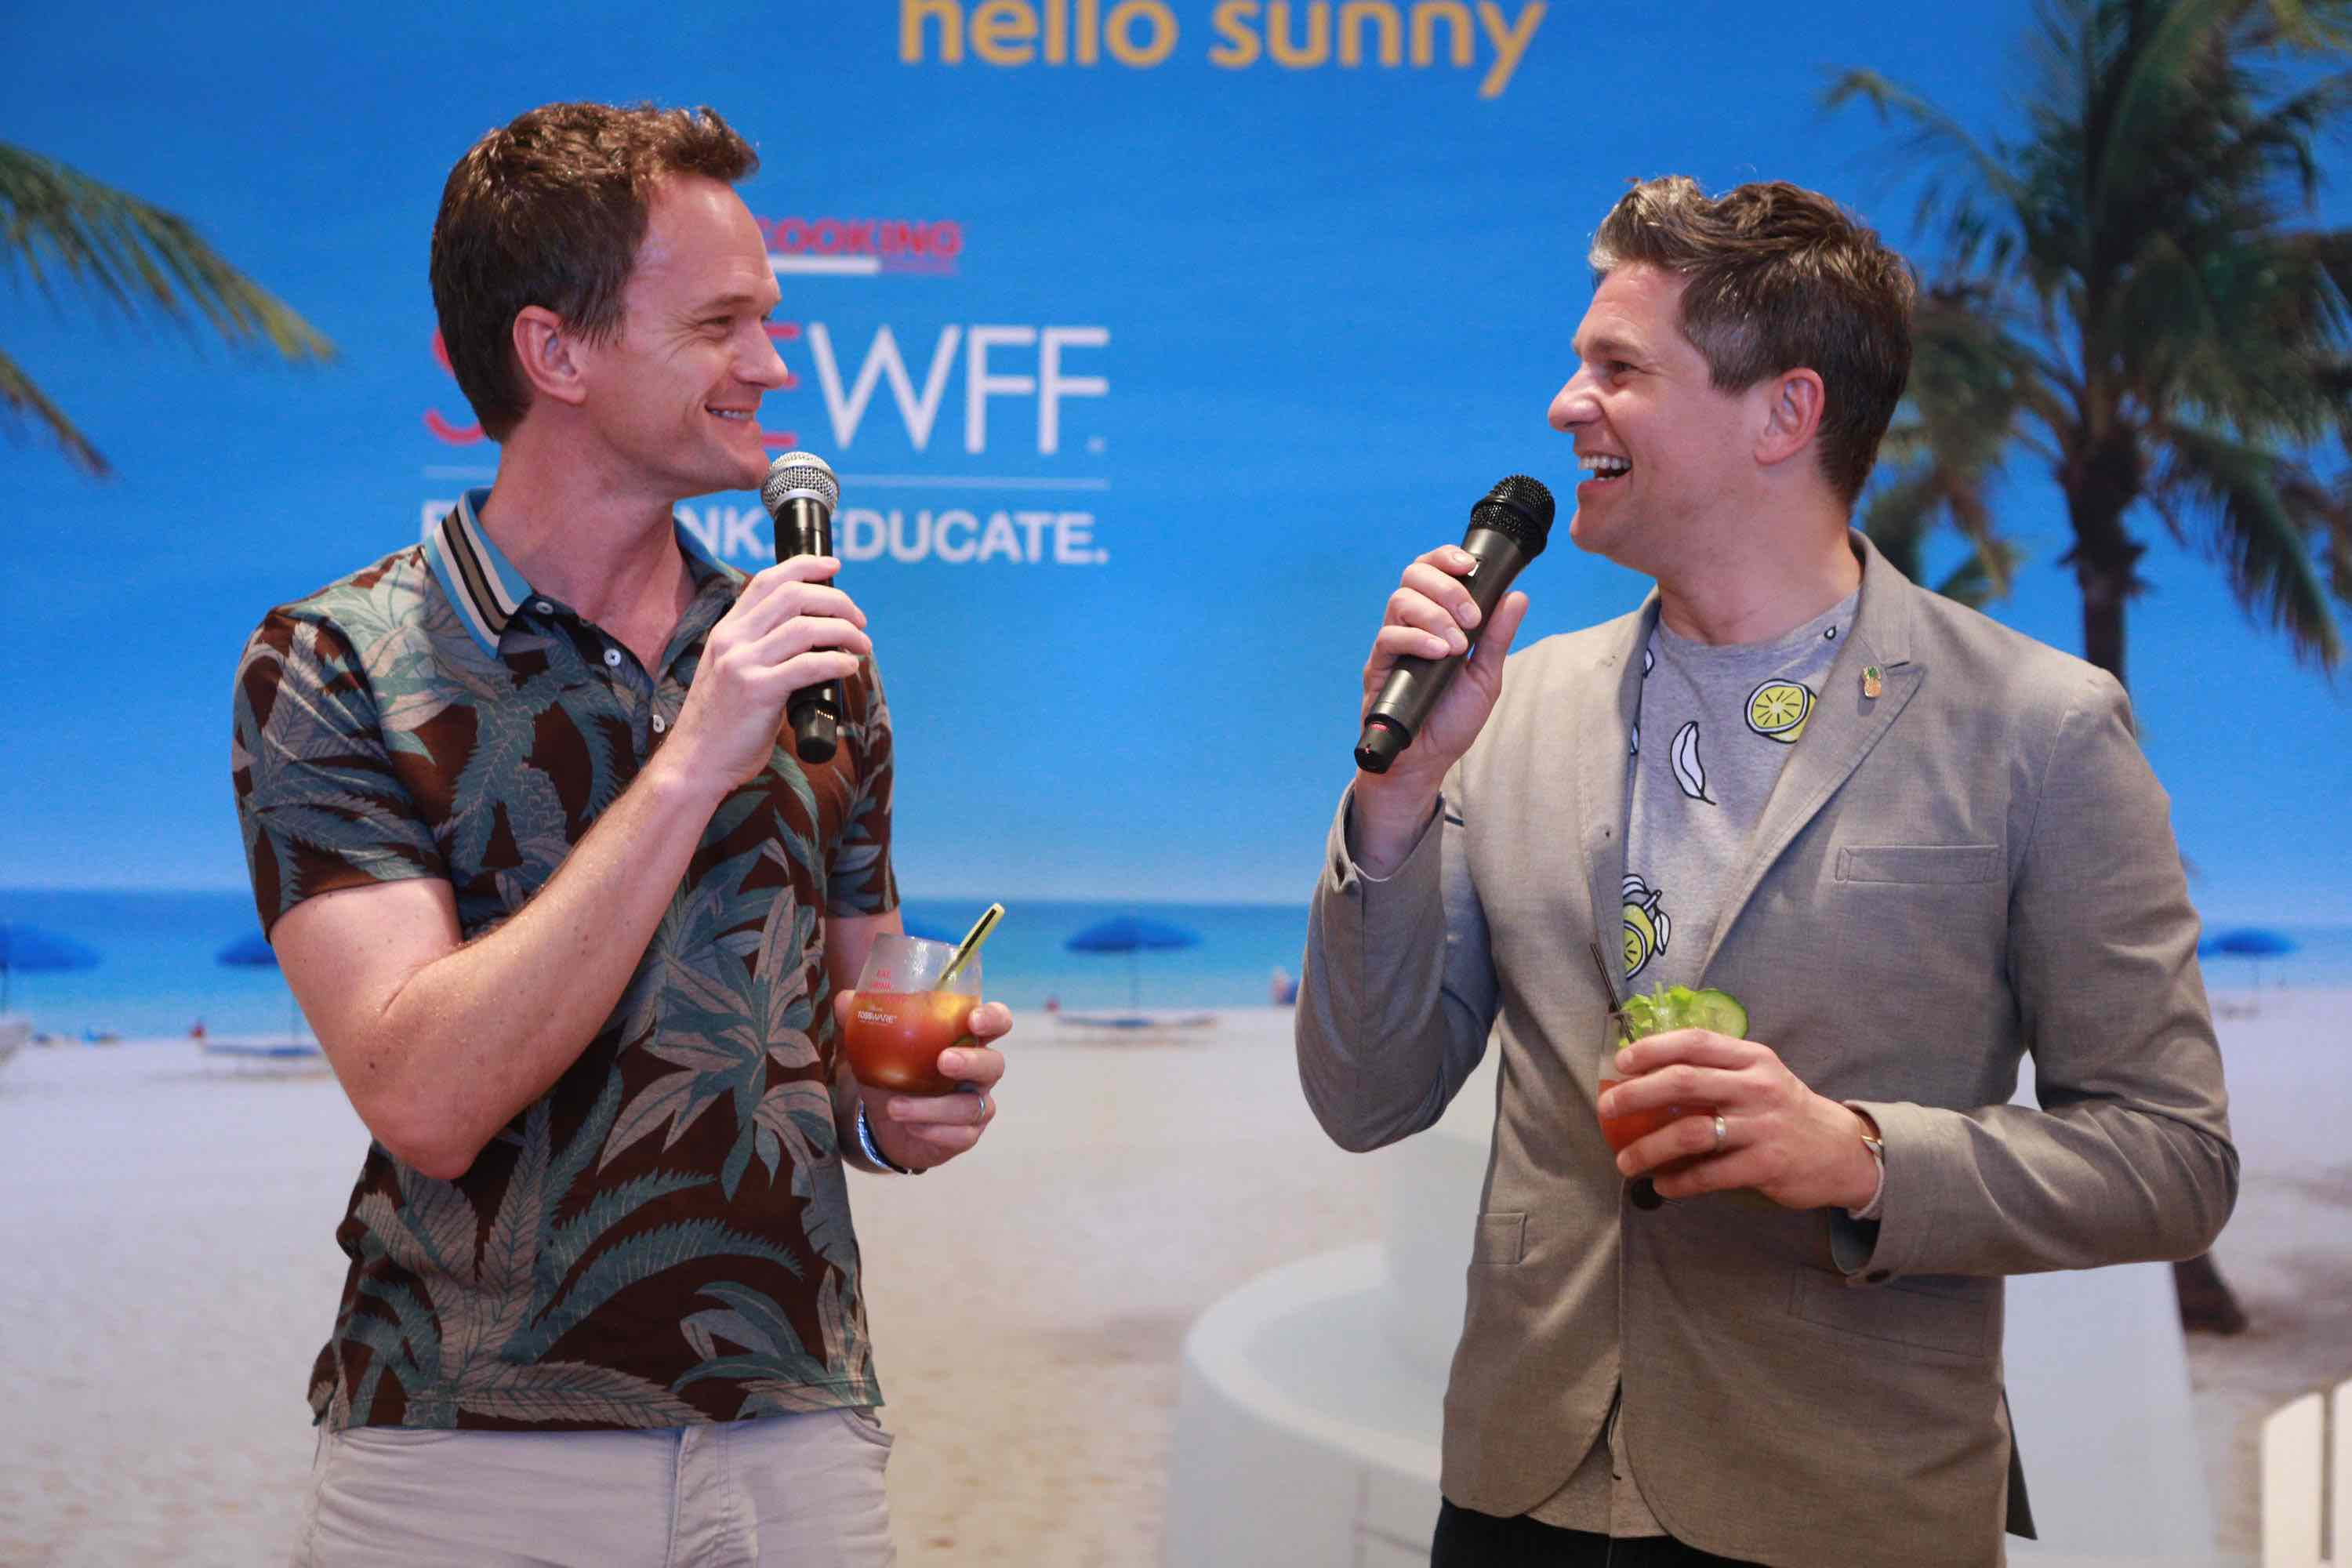 Neil Patrick Harris & David Burtka12 at Bloody Mary Brunch hosted by David Burtka & Neil Patrick Harris Part of the Taste Fort Lauderdale Series - 2017 Food Network & Cooking Channel South Beach Wine & Food Festival at The Ritz-Carlton, Fort Lauderdale on February 26, 2017 in Fort Lauderdale, Florida